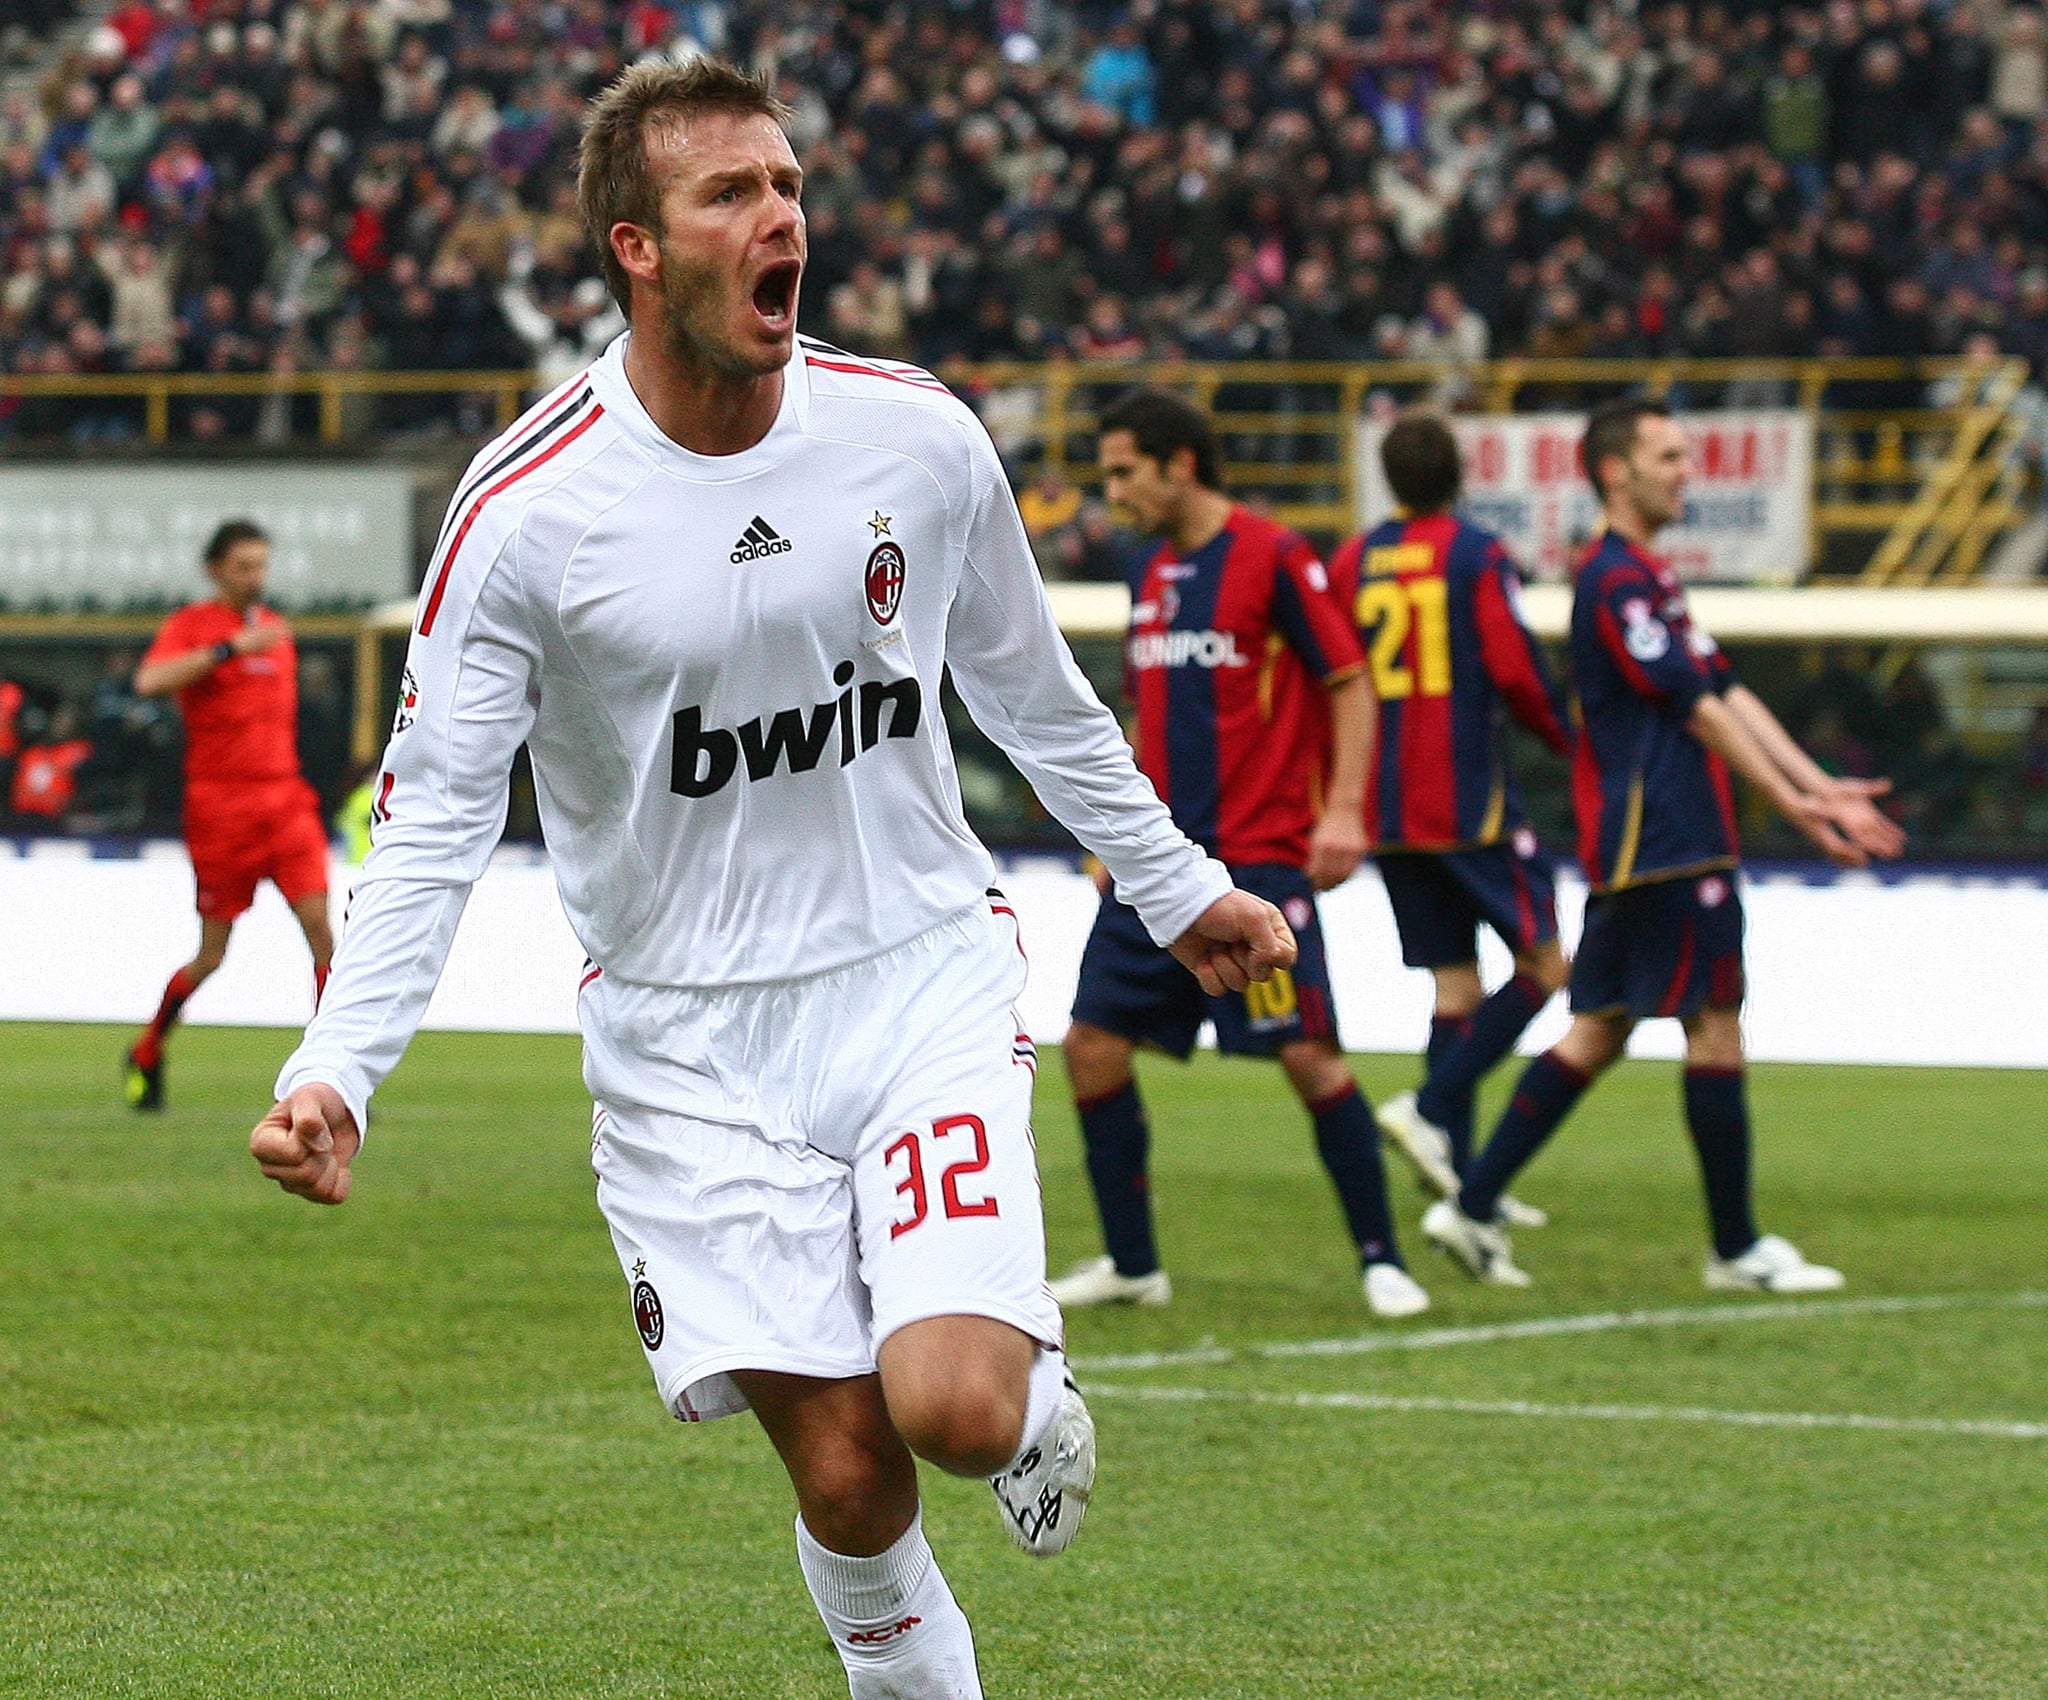 photos of david beckham celebrating after scoring his